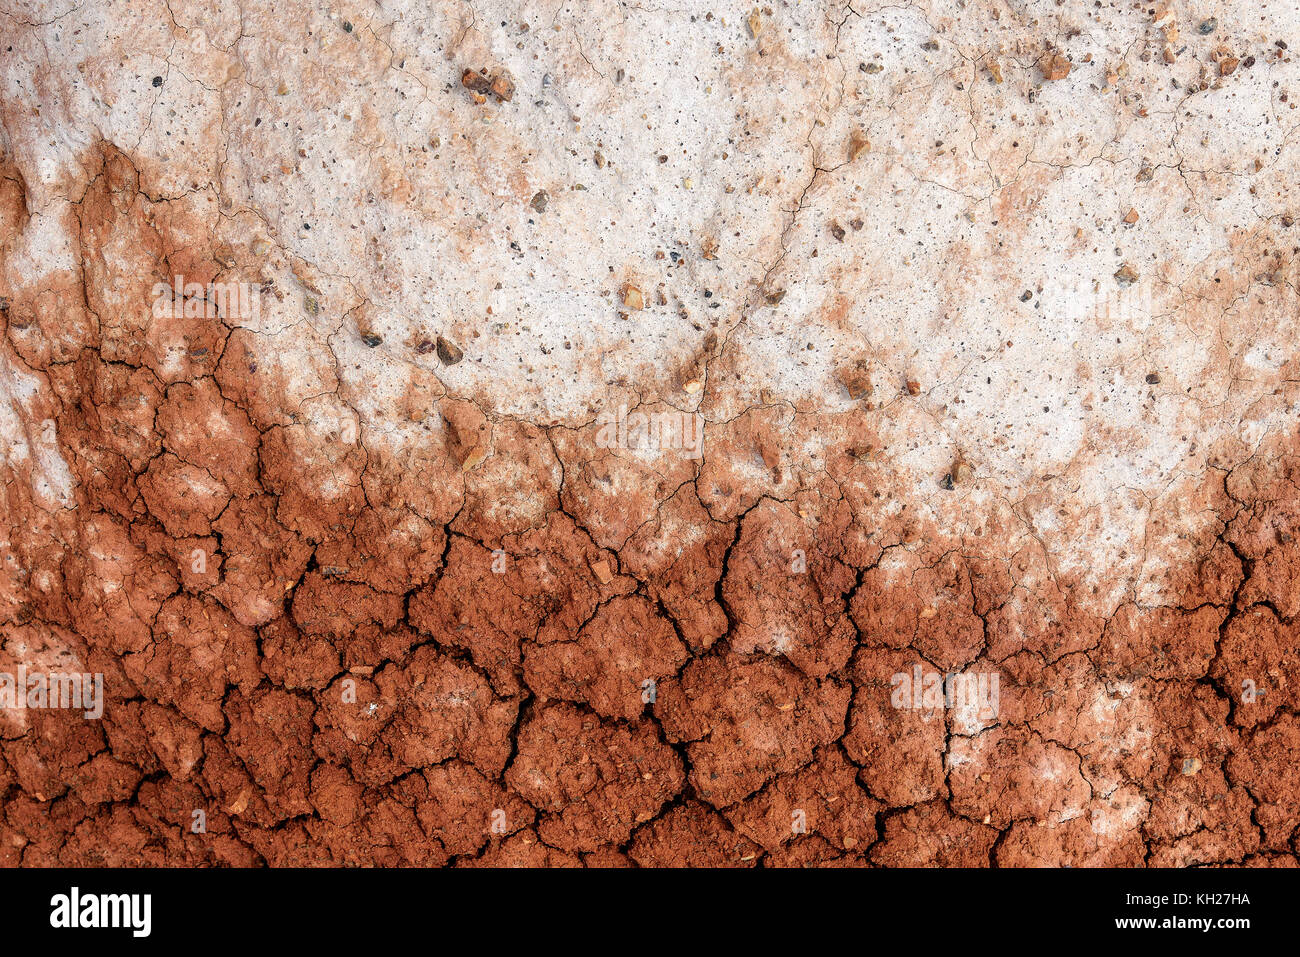 Abstract background with texture of brown and white colors of dry ground with cracks and stones on the mountain - Stock Image